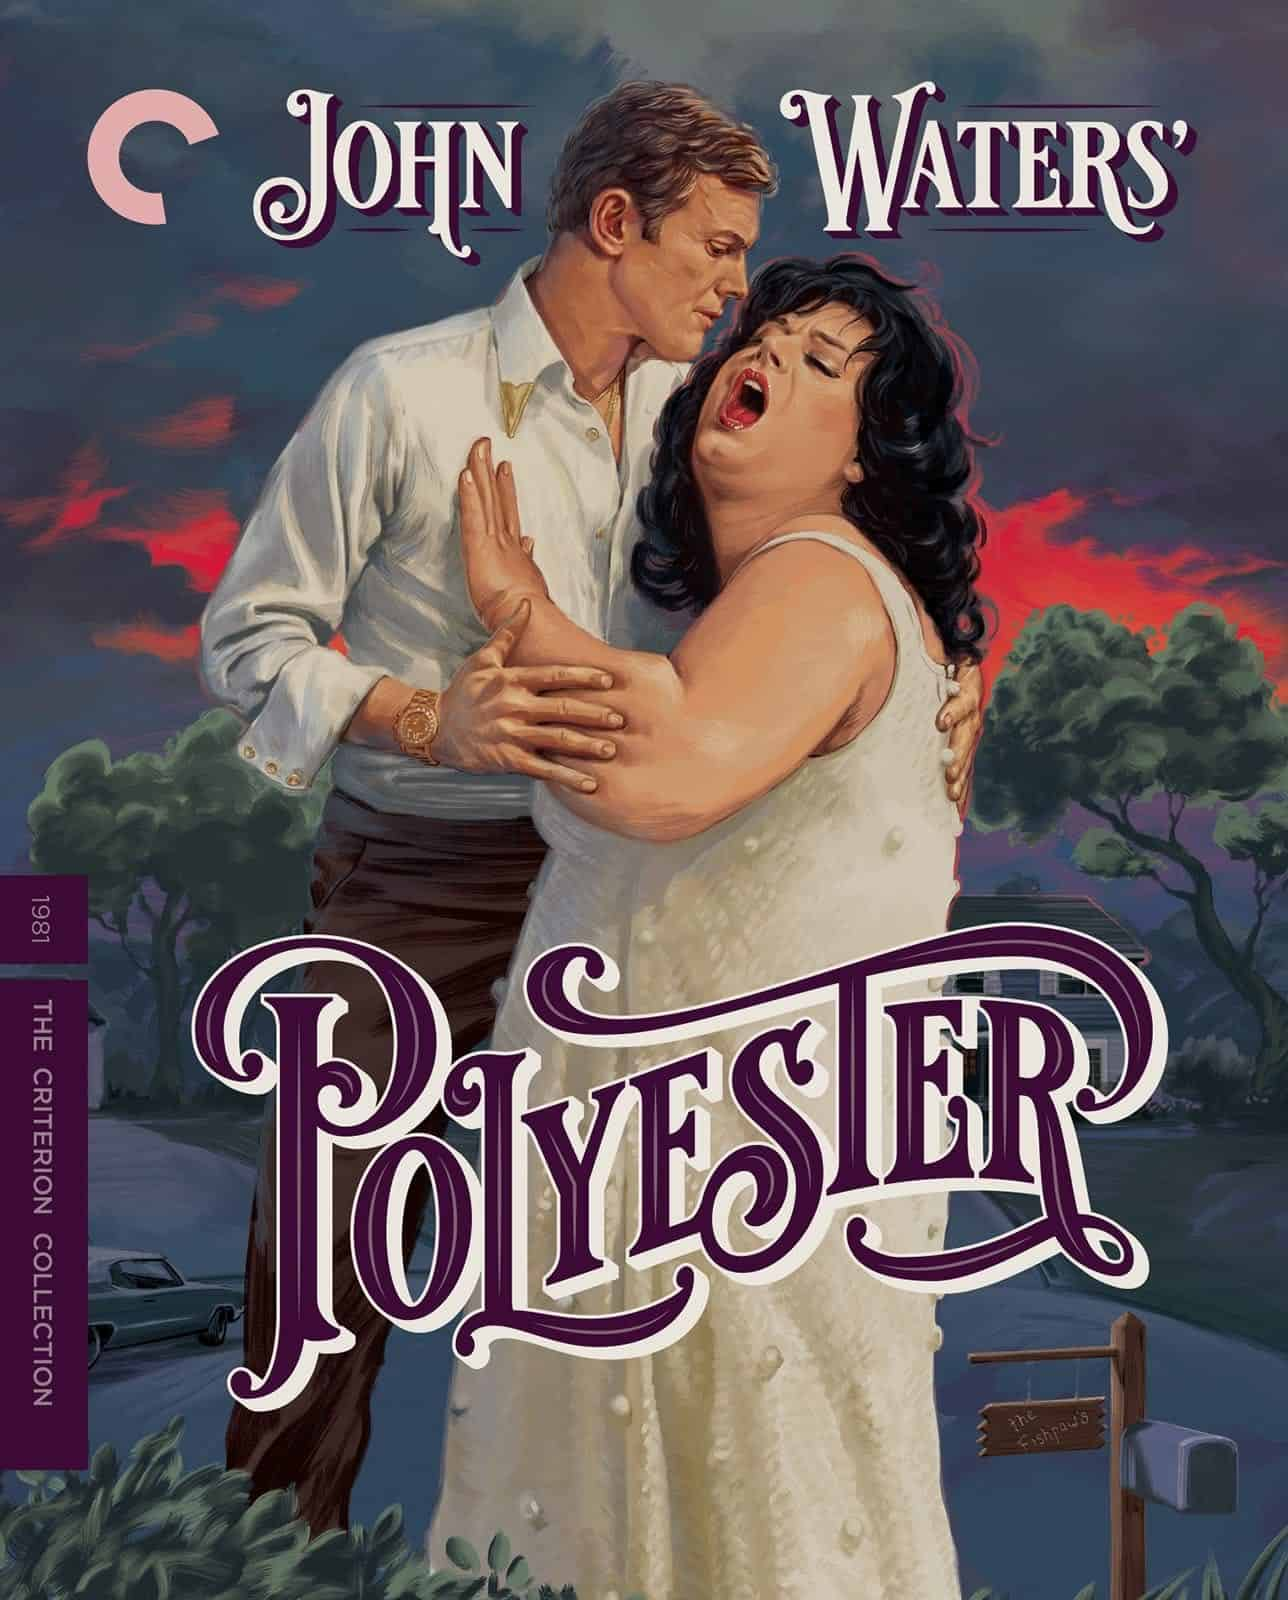 Polyester The Criterion Collection Bluray